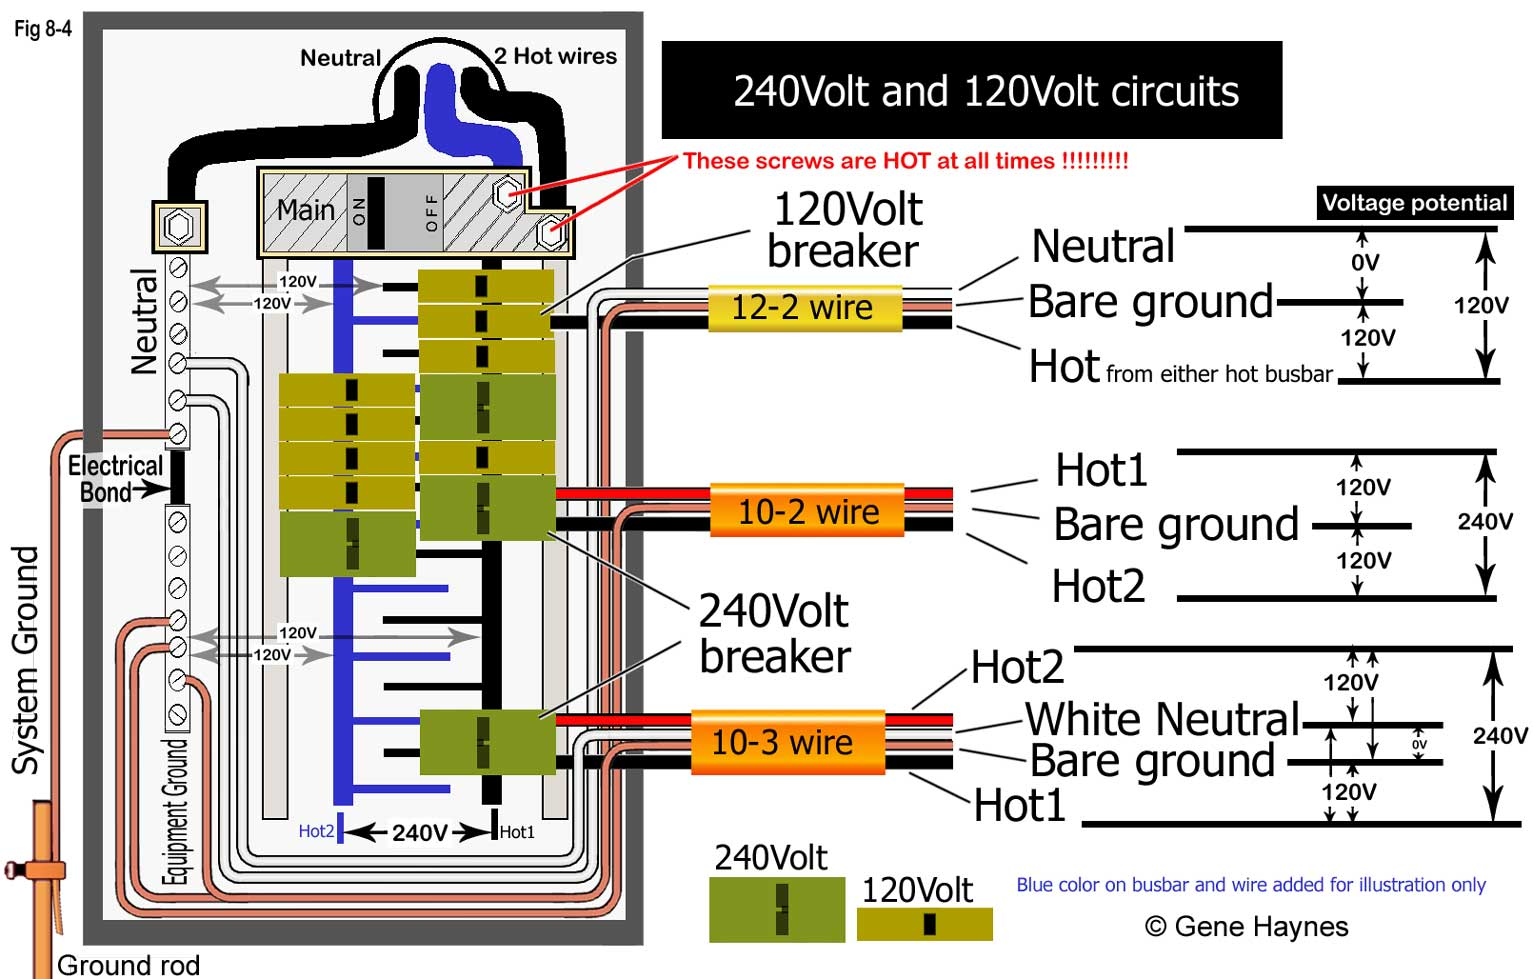 240 Circuit Breaker Wiring Diagram: How to install a subpanel   How to install main lug,